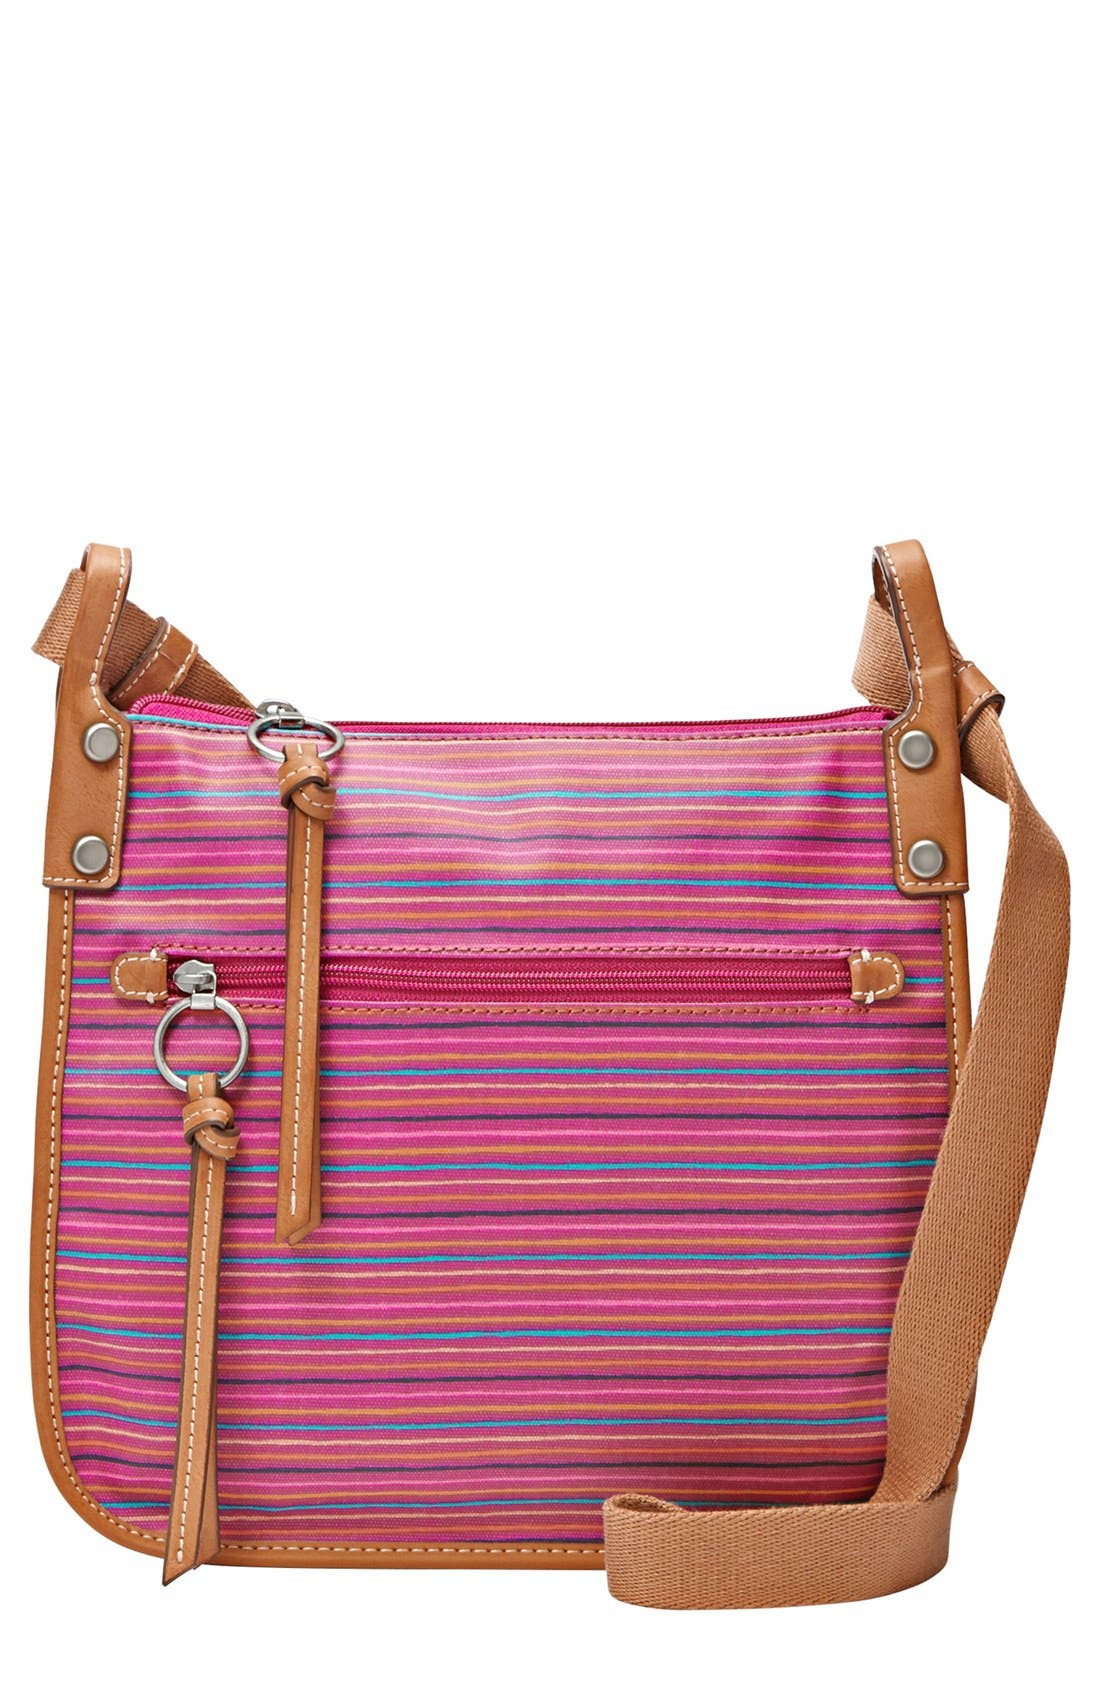 Main Image - Fossil 'Key-Per' Crossbody Bag